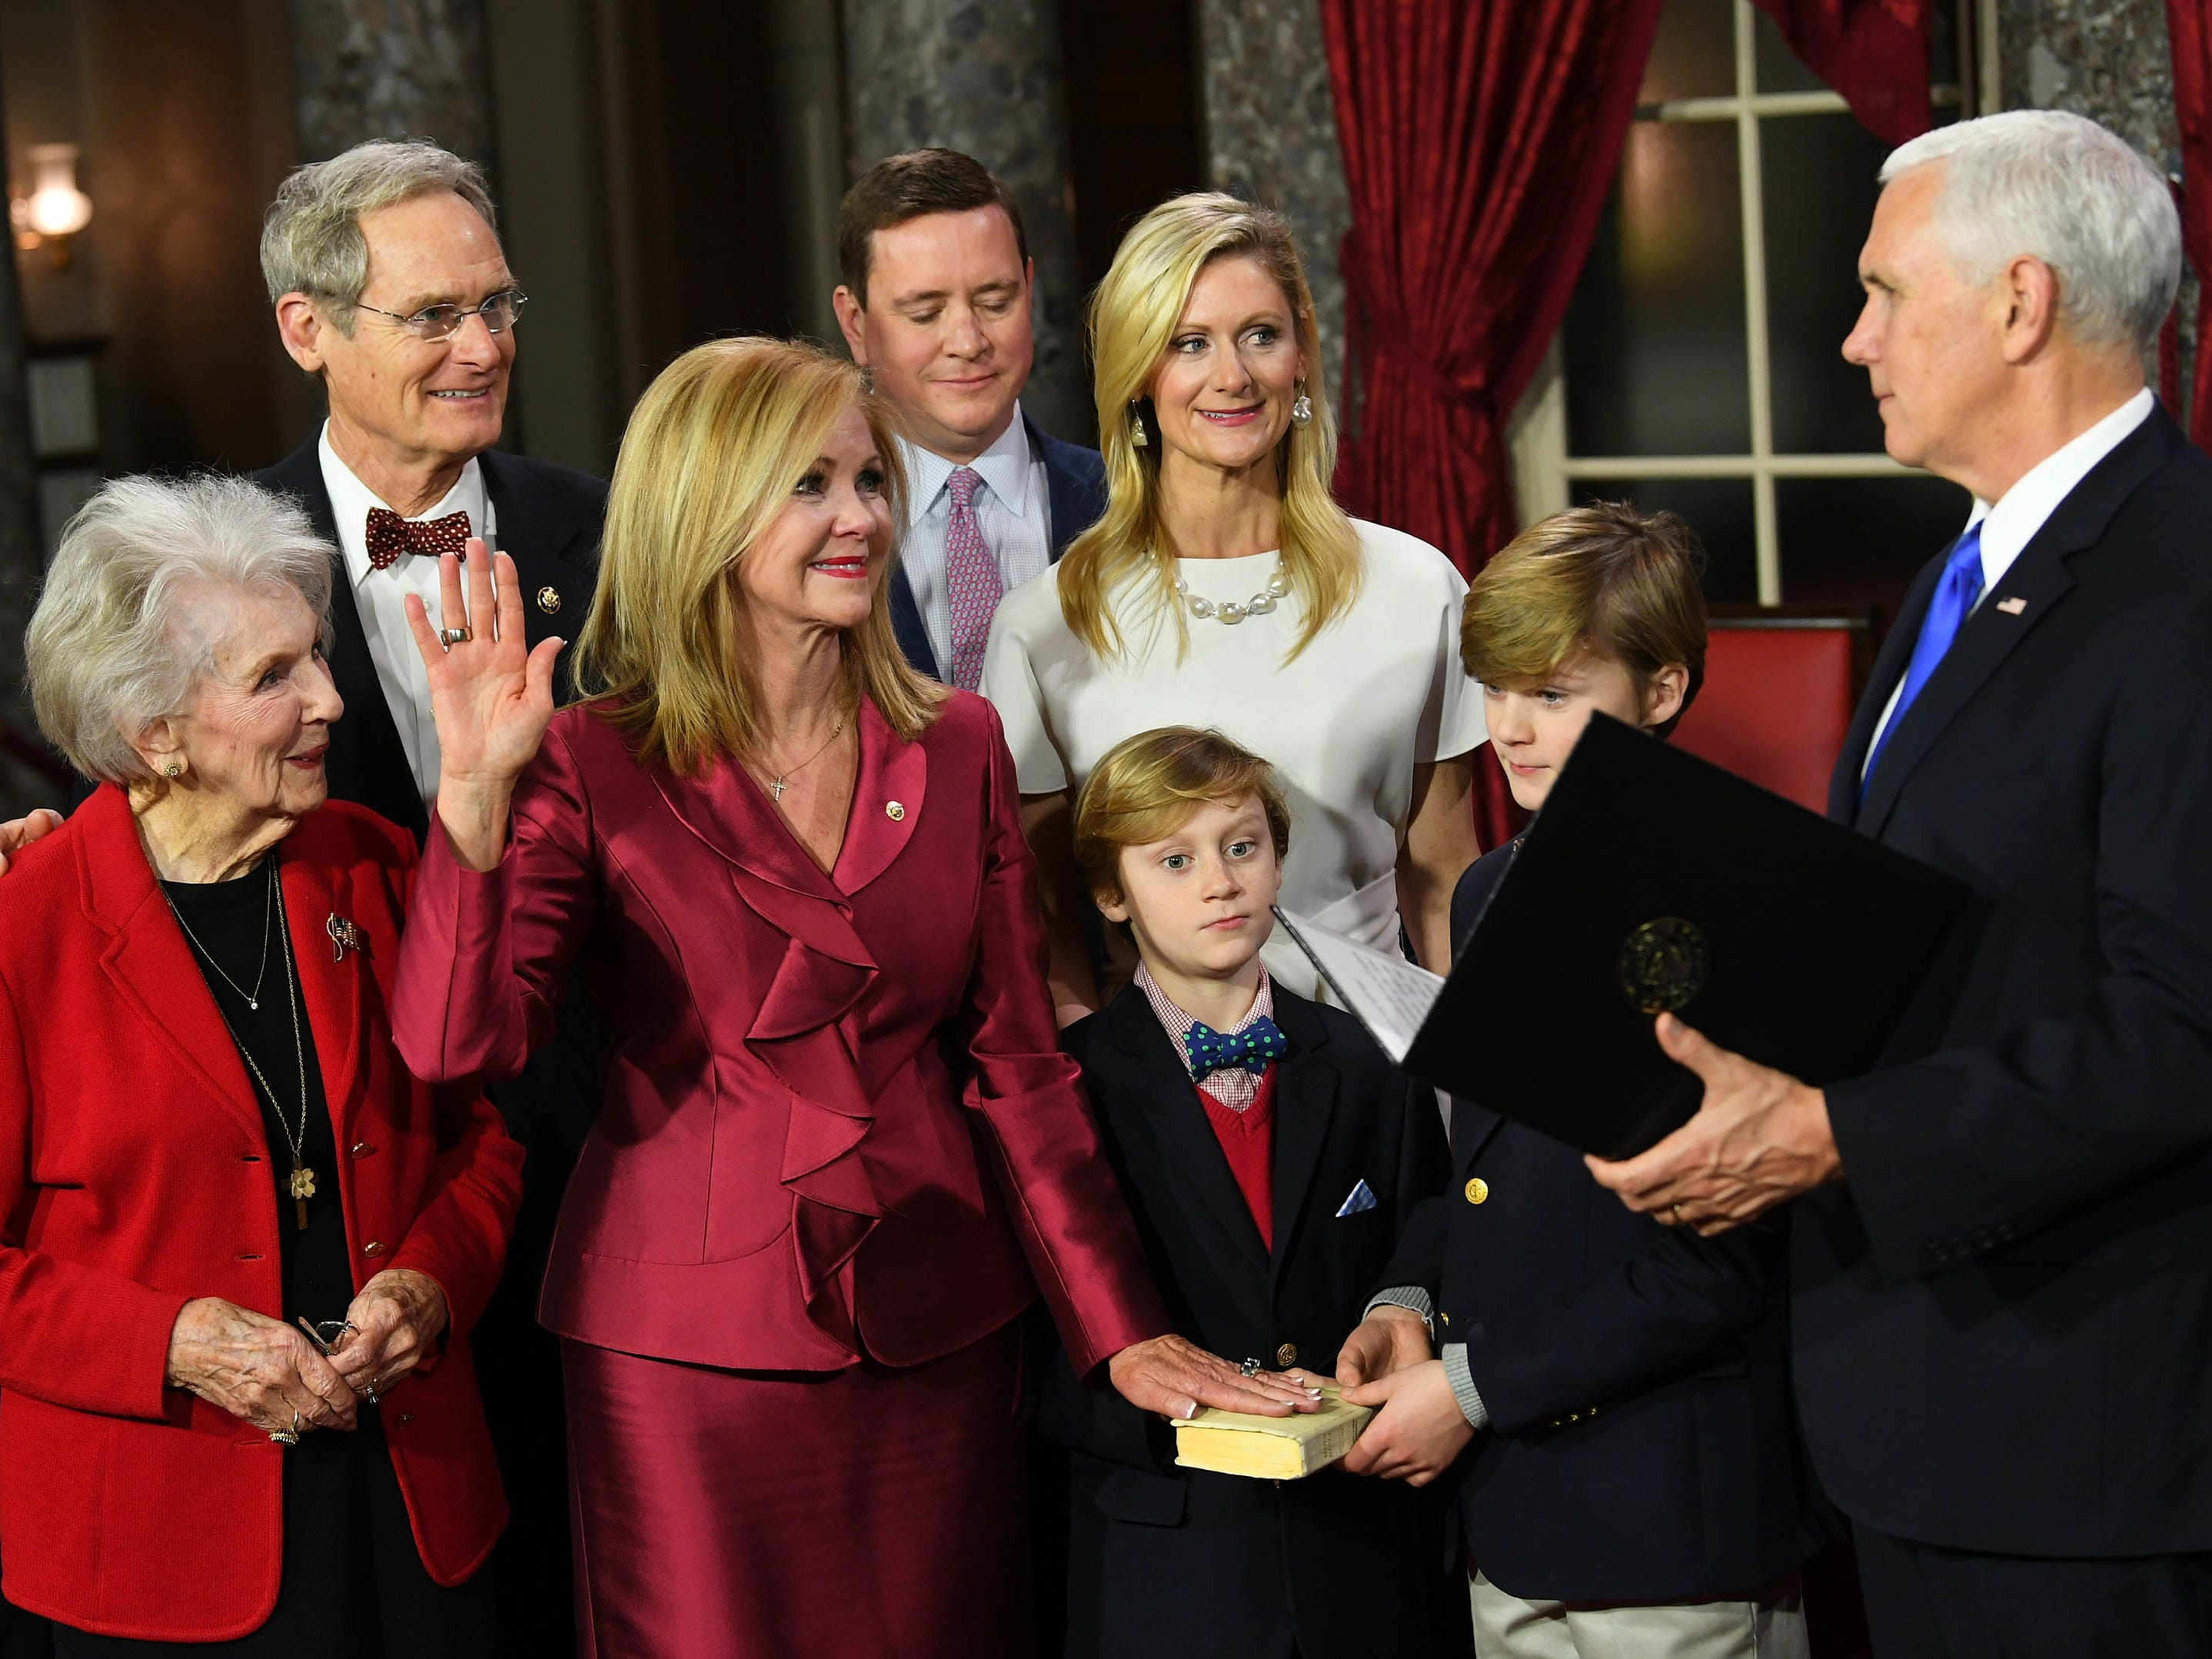 Vice President Mike Pence officiates ceremonial swearing-in of Marsha Blackburn in the Old Senate Chambers at the U.S. Capitol as she becomes Tennessee's first female United States Senator.